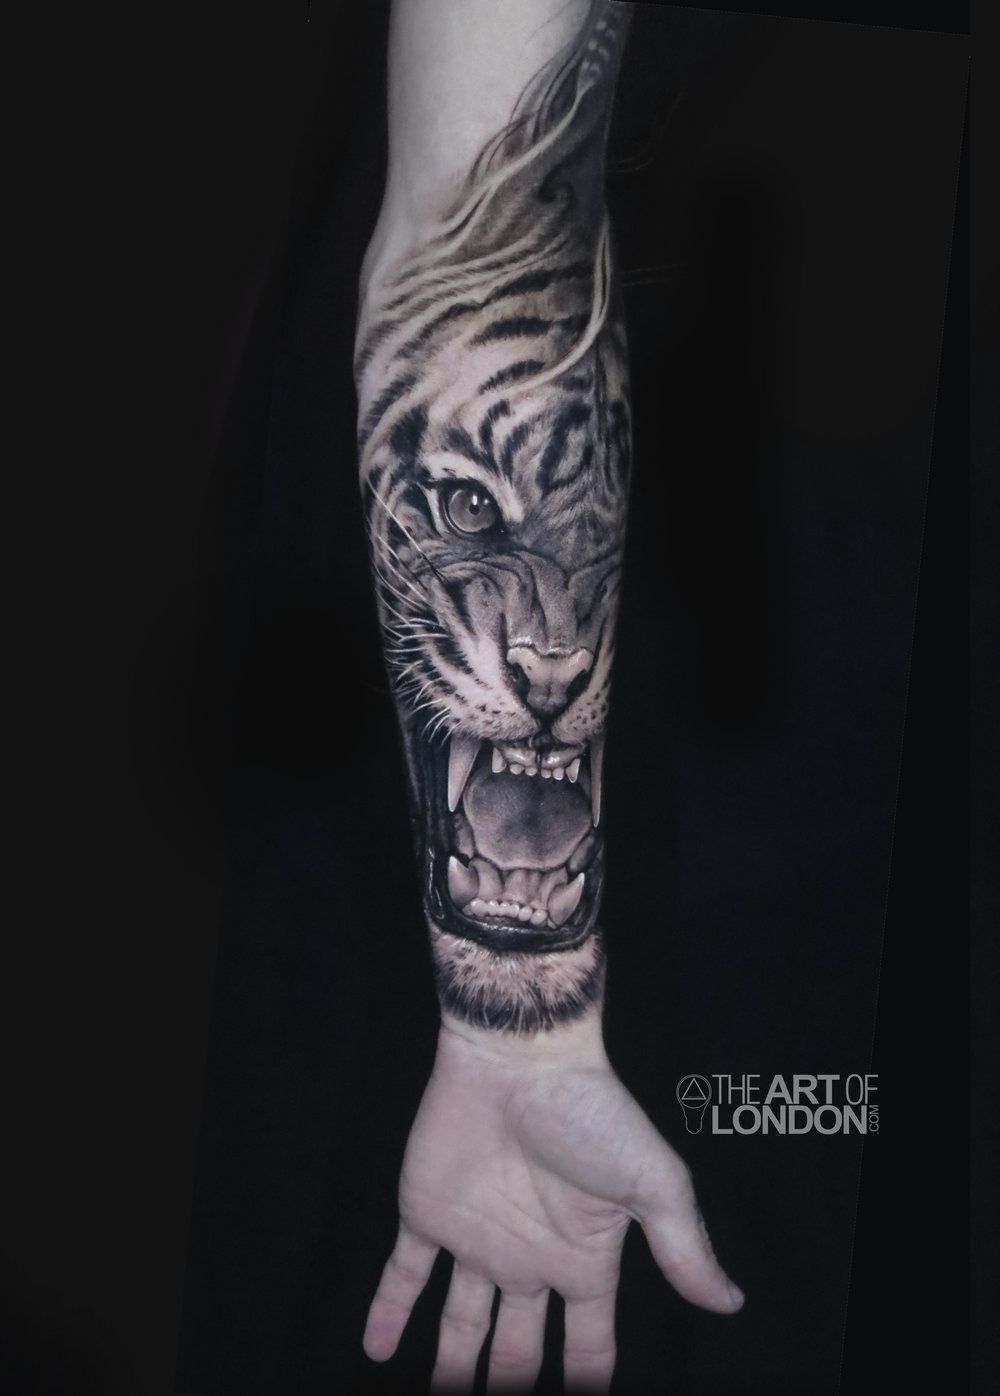 tiger portrait black and grey tattoo large.jpg